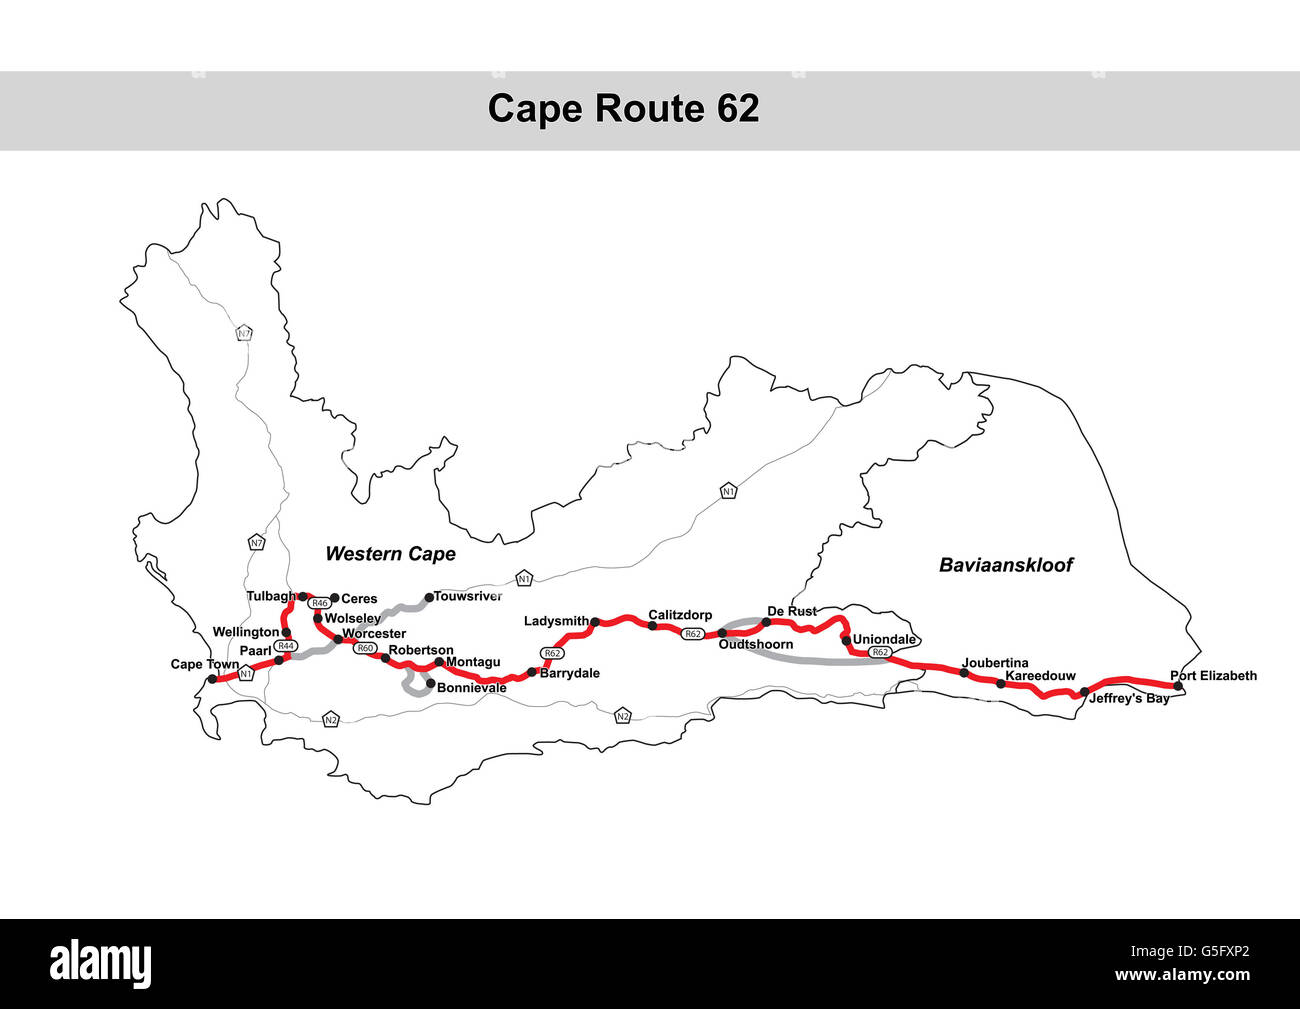 Map Of Route 62 South Africa.Cape Route 62 Map South Africa Stock Photo 106685770 Alamy